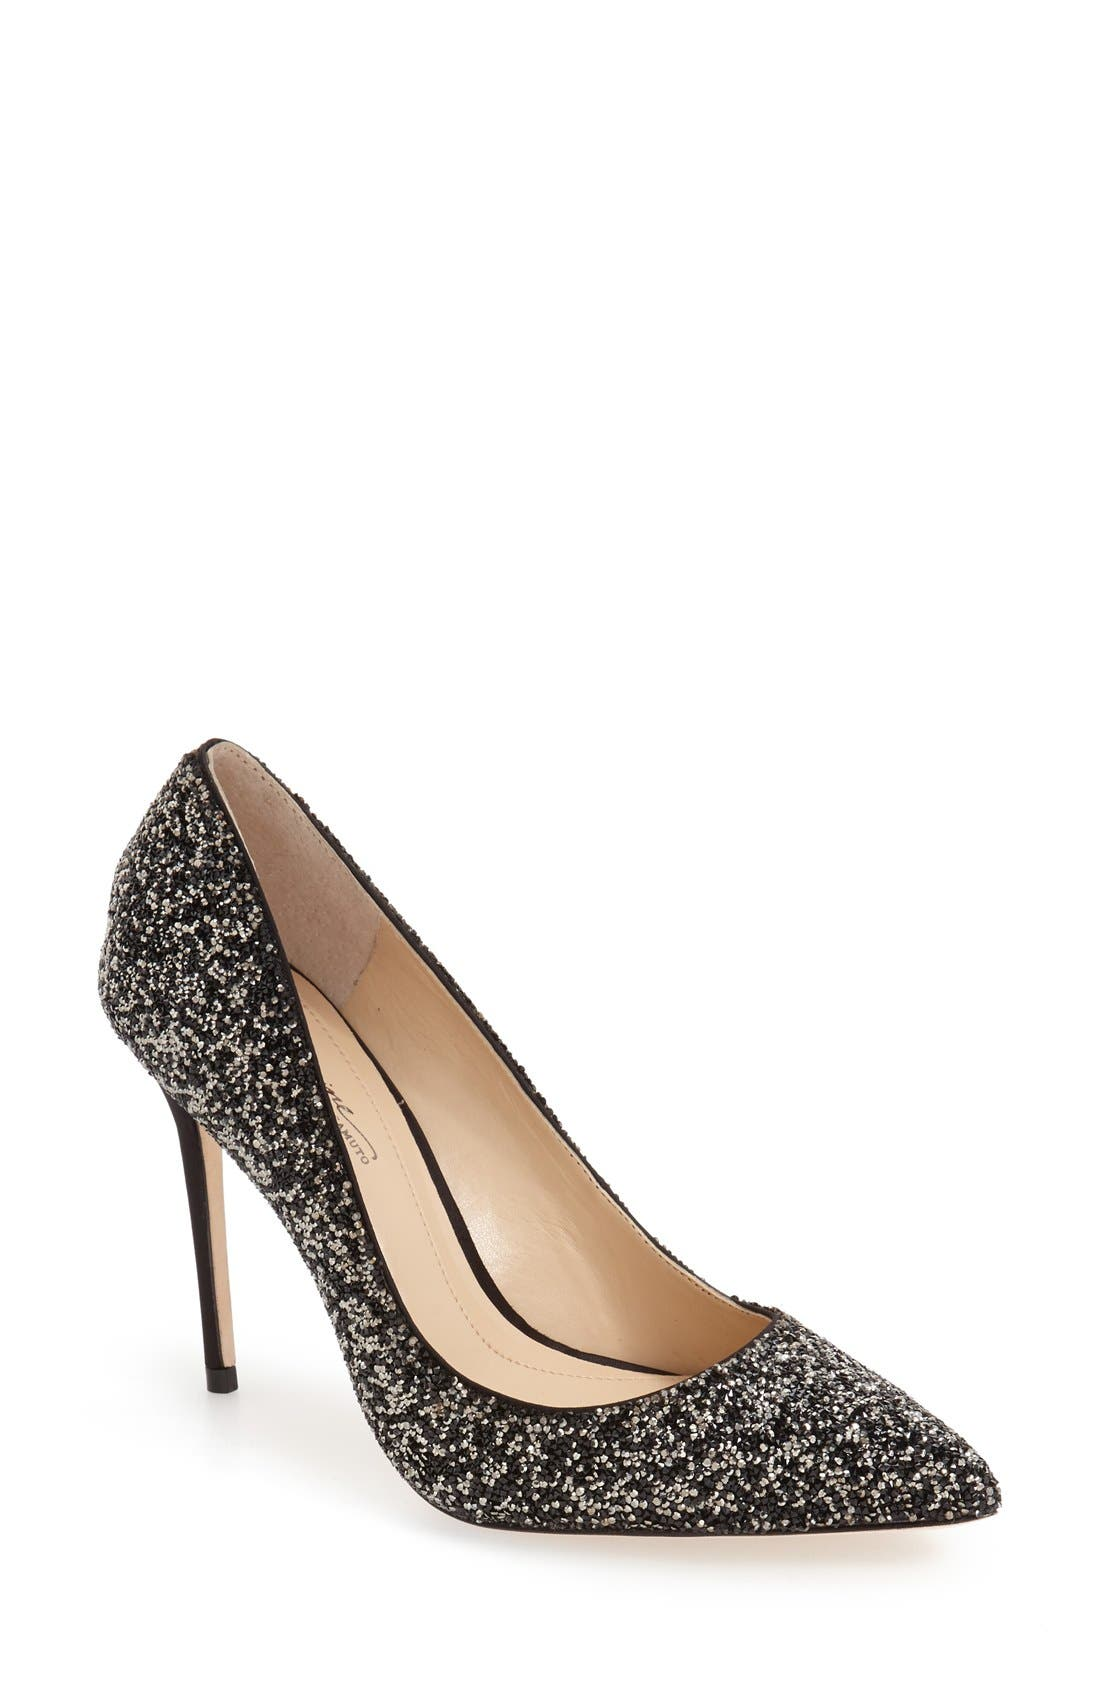 IMAGINE BY VINCE CAMUTO, 'Olson' Crystal Embellished Pump, Main thumbnail 1, color, 002